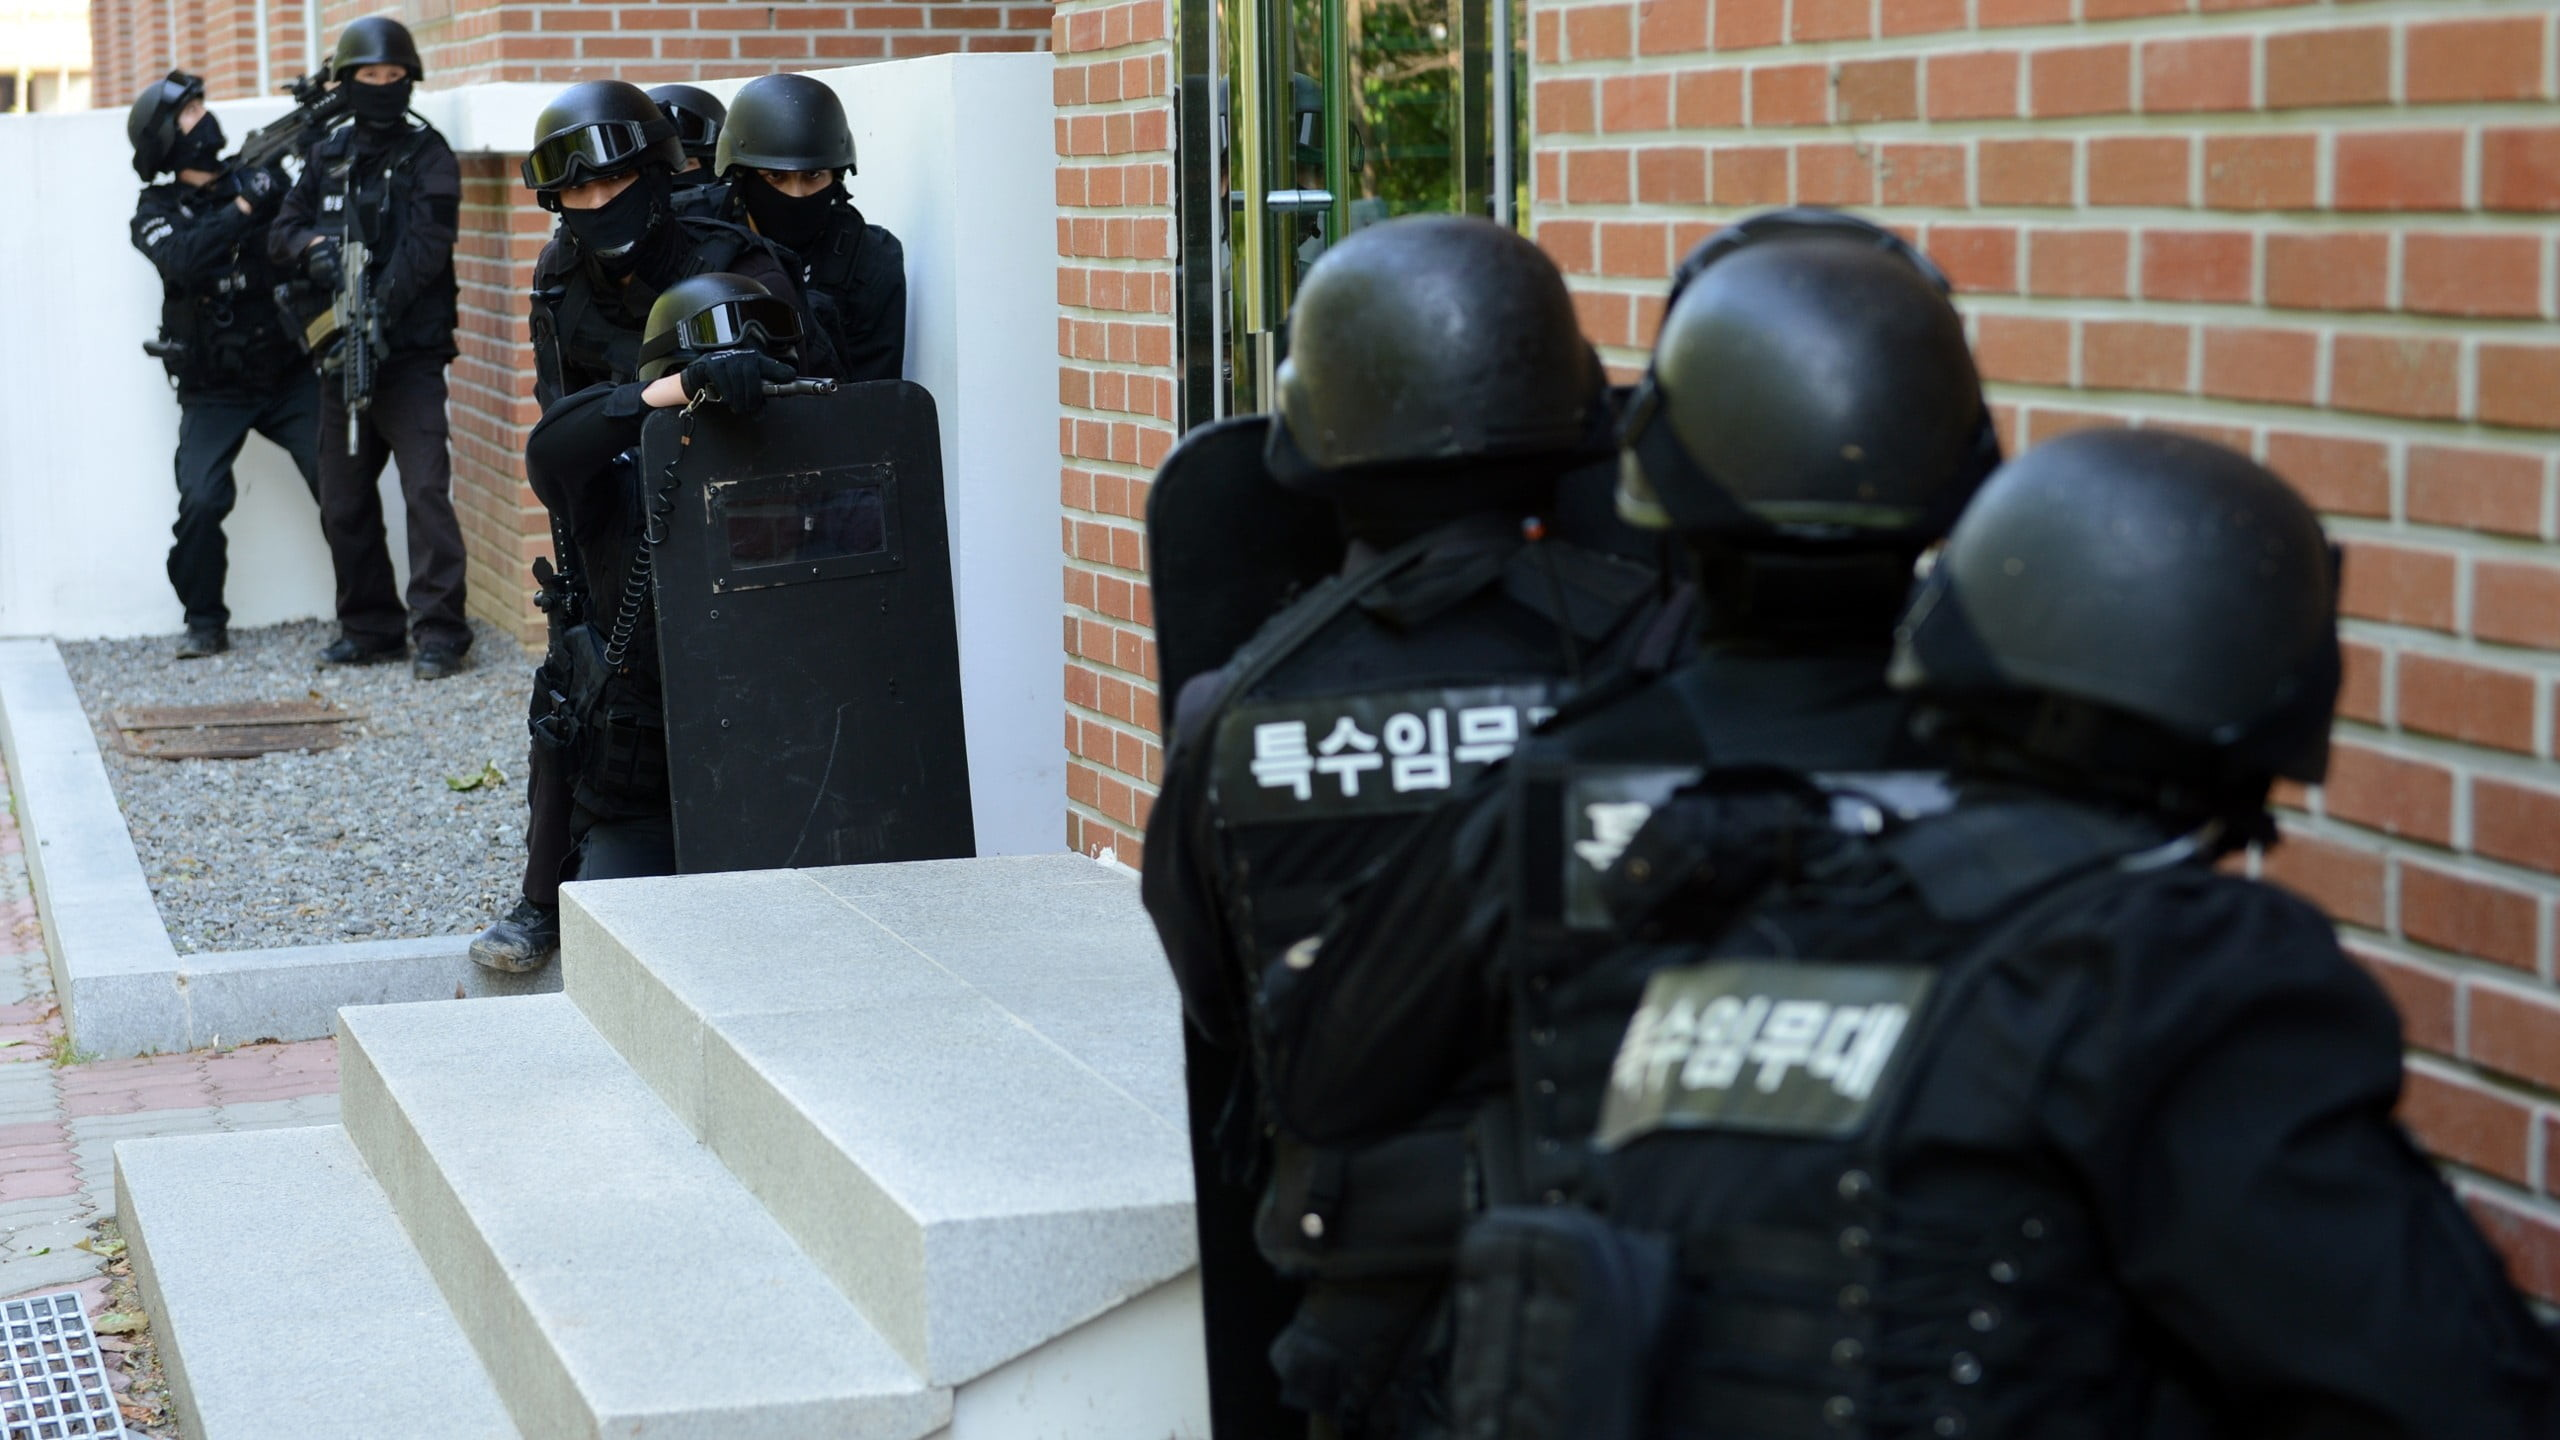 Res: 2560x1440, swat team, military, Republic of Korea Armed Forces, police HD wallpaper